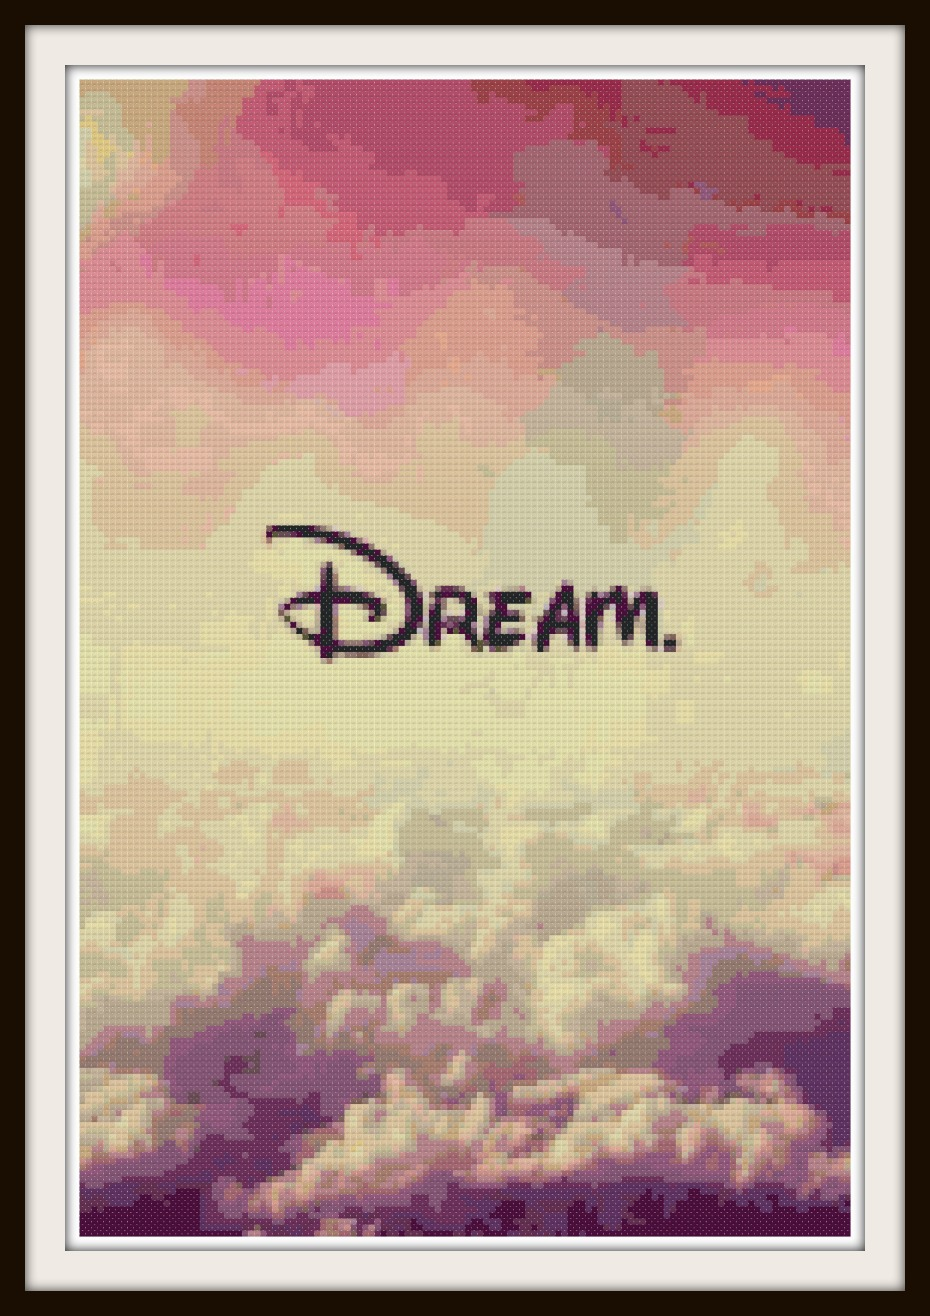 Disney Cross Stitch Pattern - Dream like Disney!